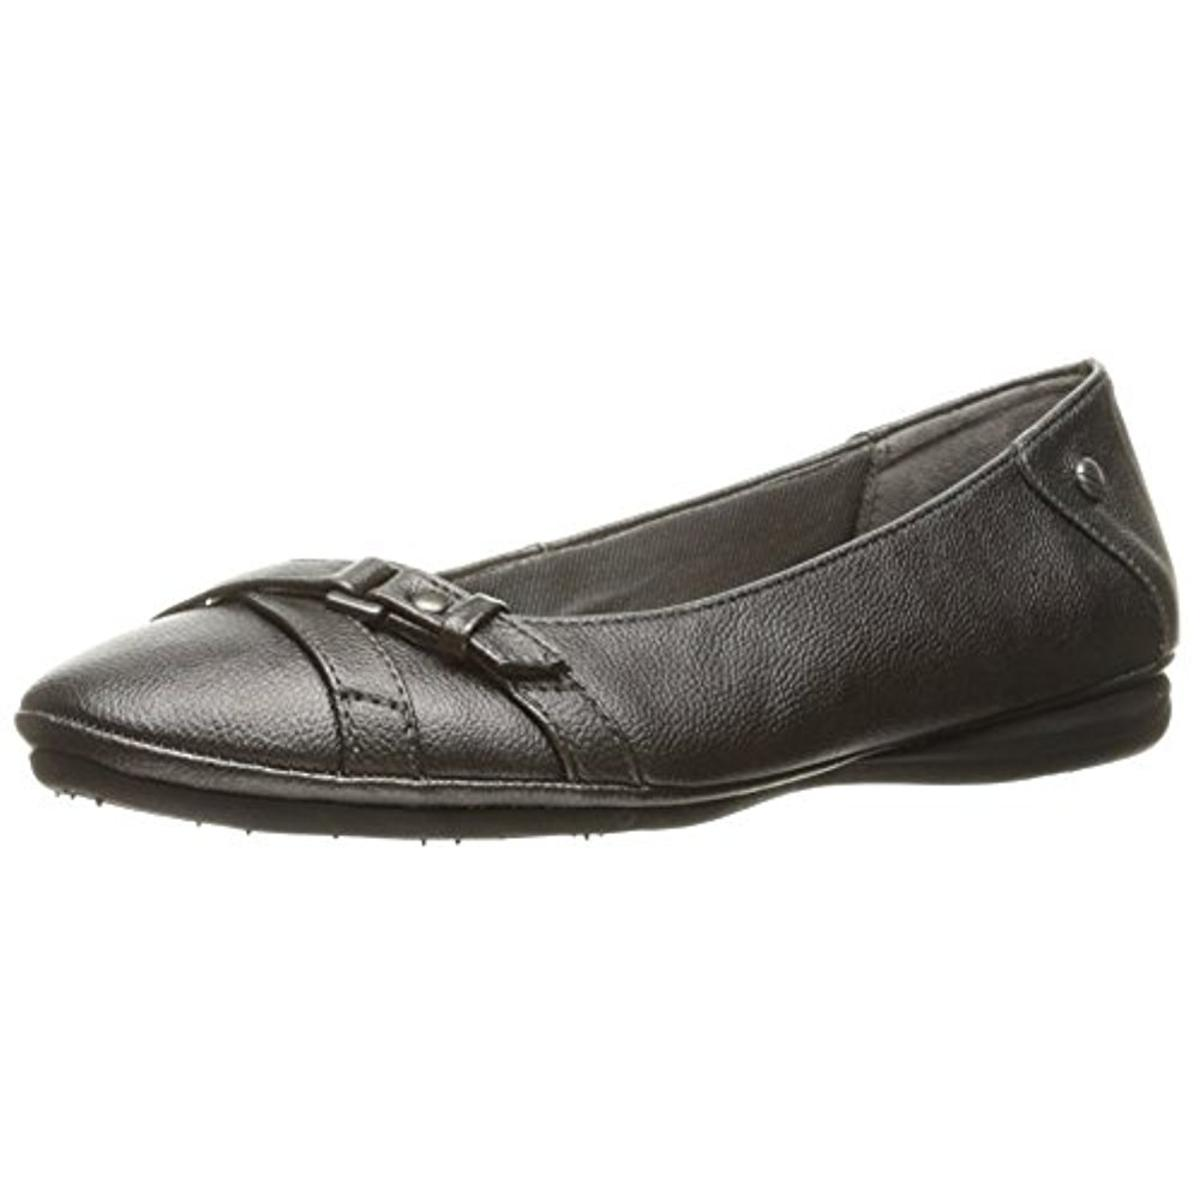 Lifestride Womens Addy Belted Slip On Ballet Flats by LifeStride